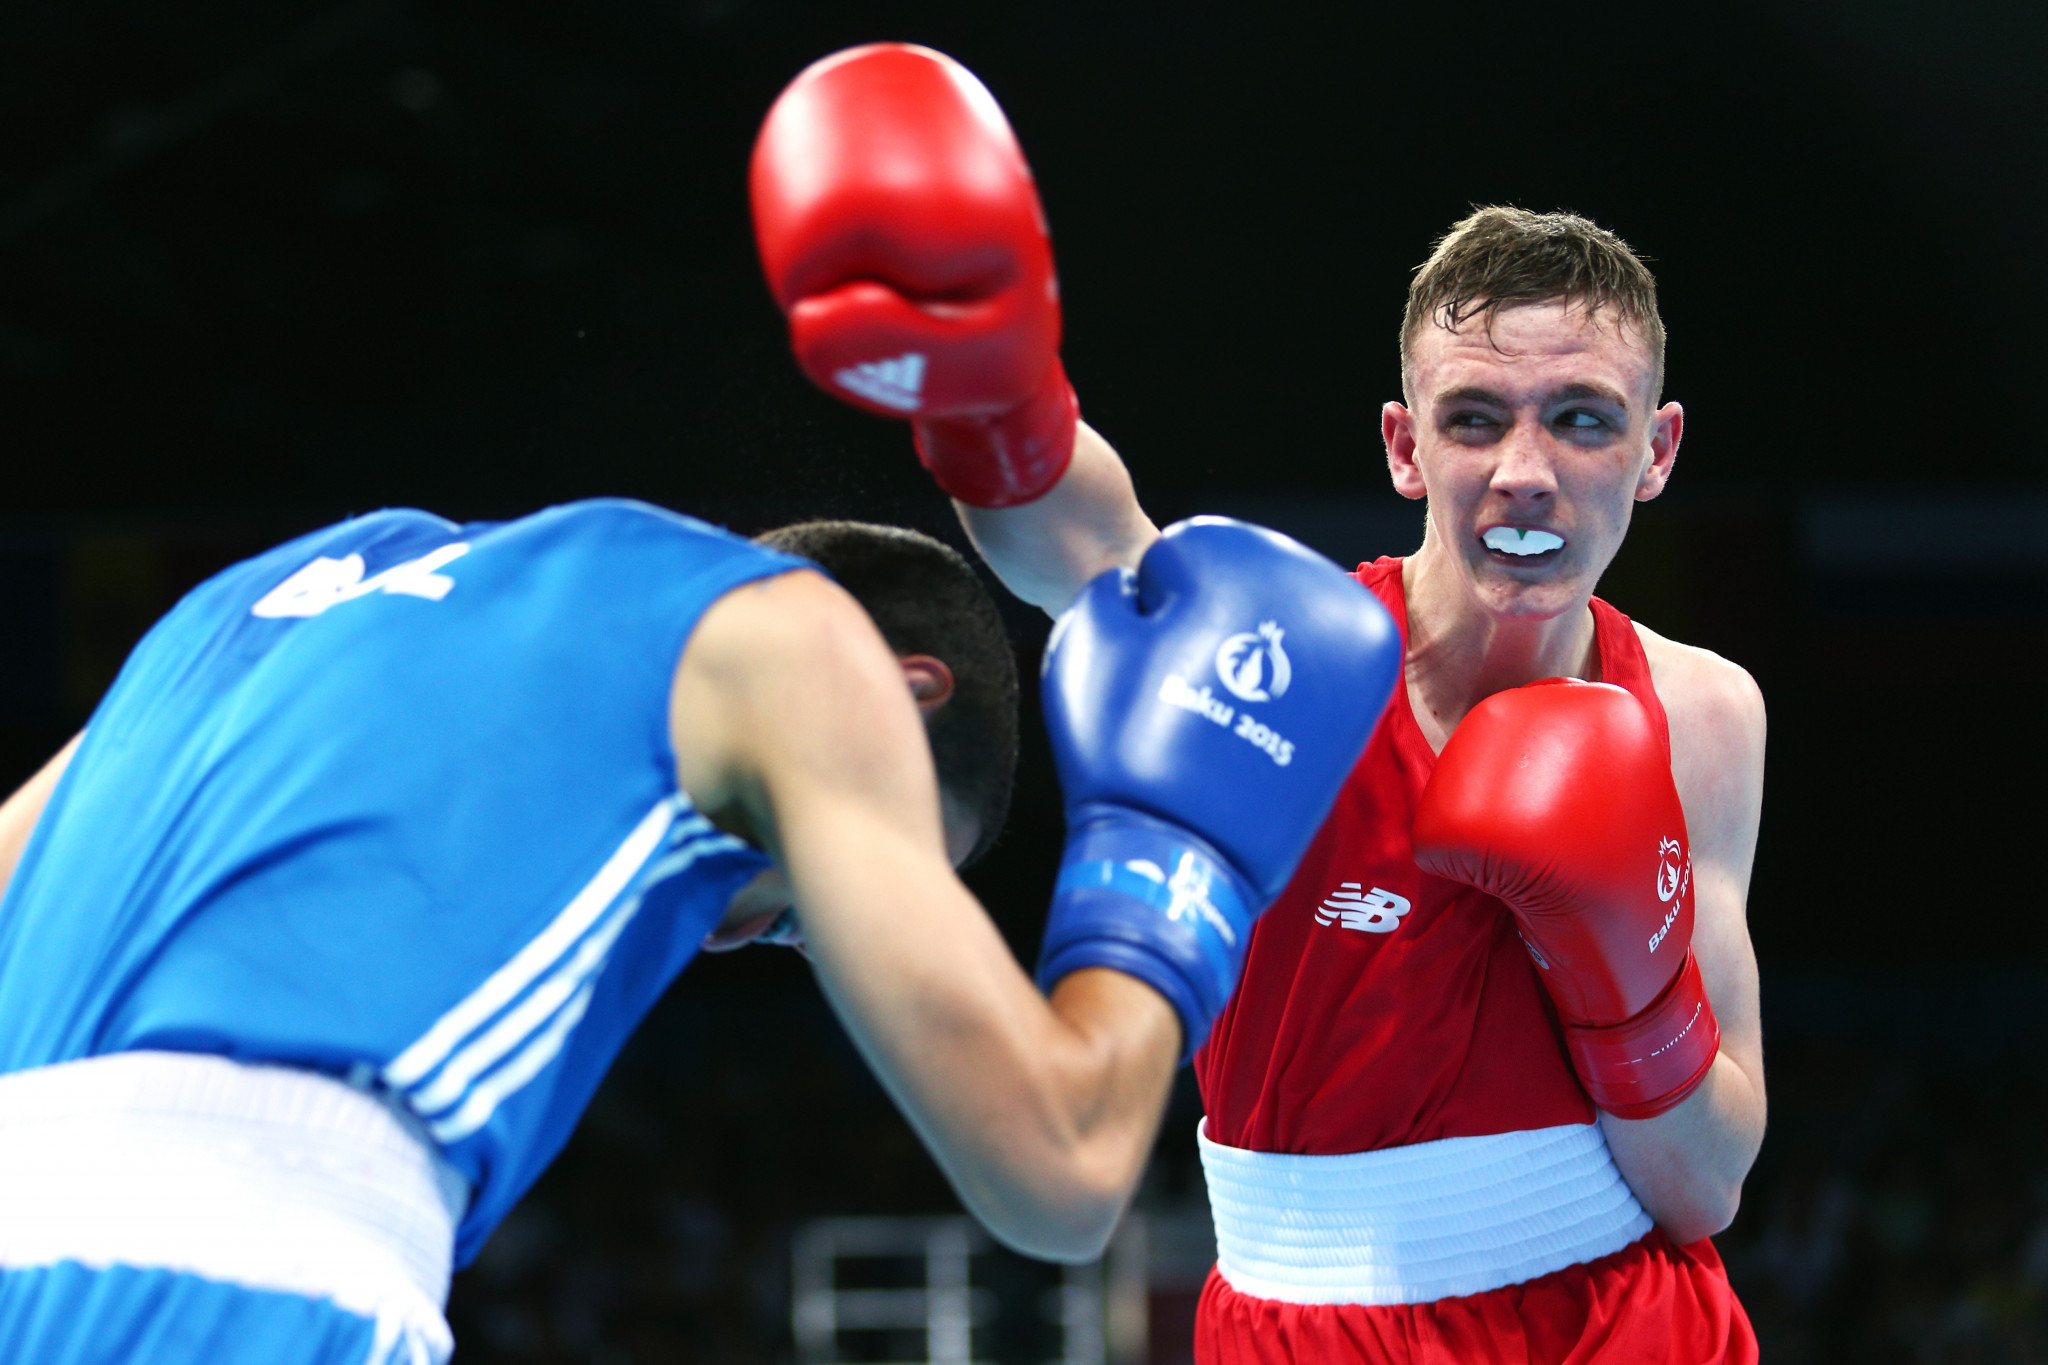 European Games boxing silver medallist Brendan Irvine of Ireland has been ruled out of Minsk 2019 ©Getty Images